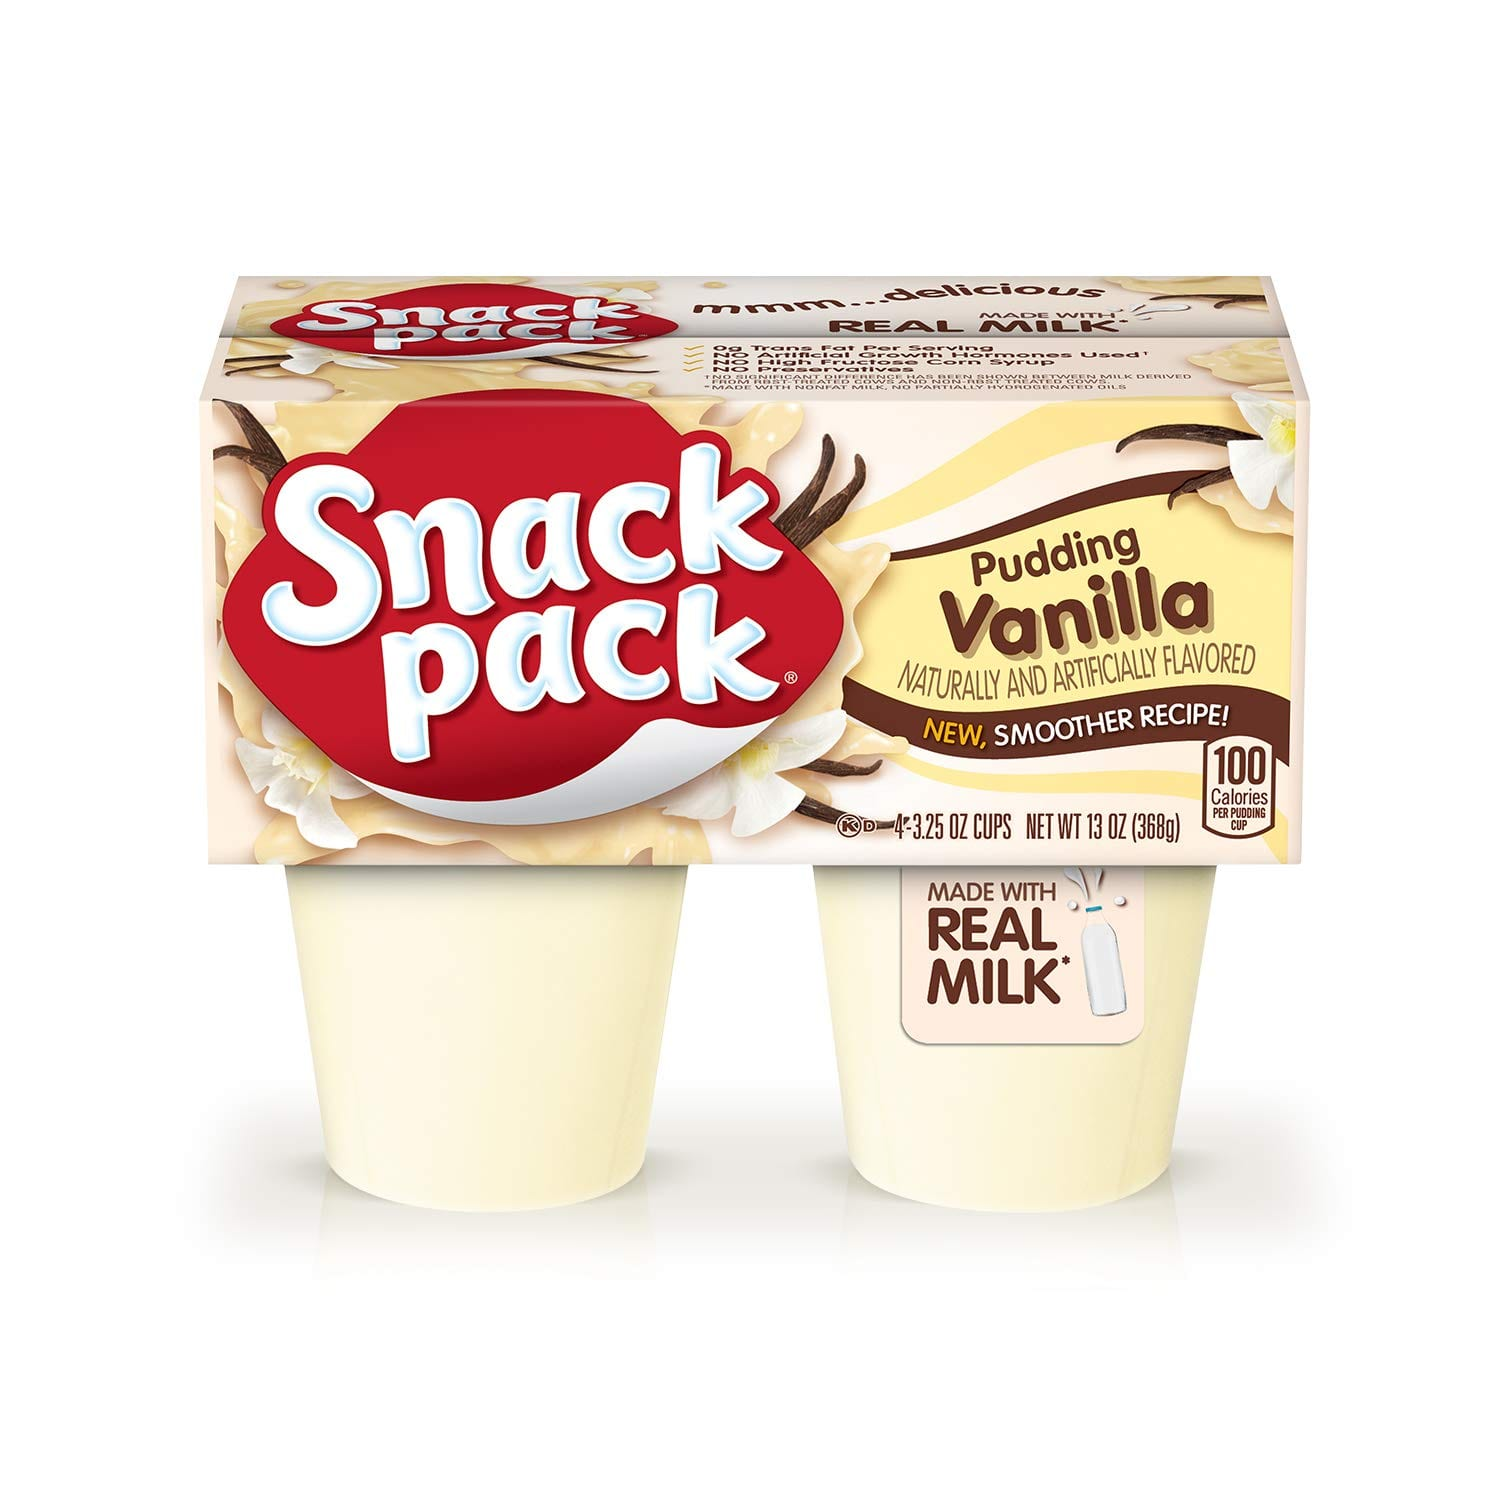 Snack Pack Pie Pudding Cups, Vanilla, 4 - 3.25 Ounce $0.94